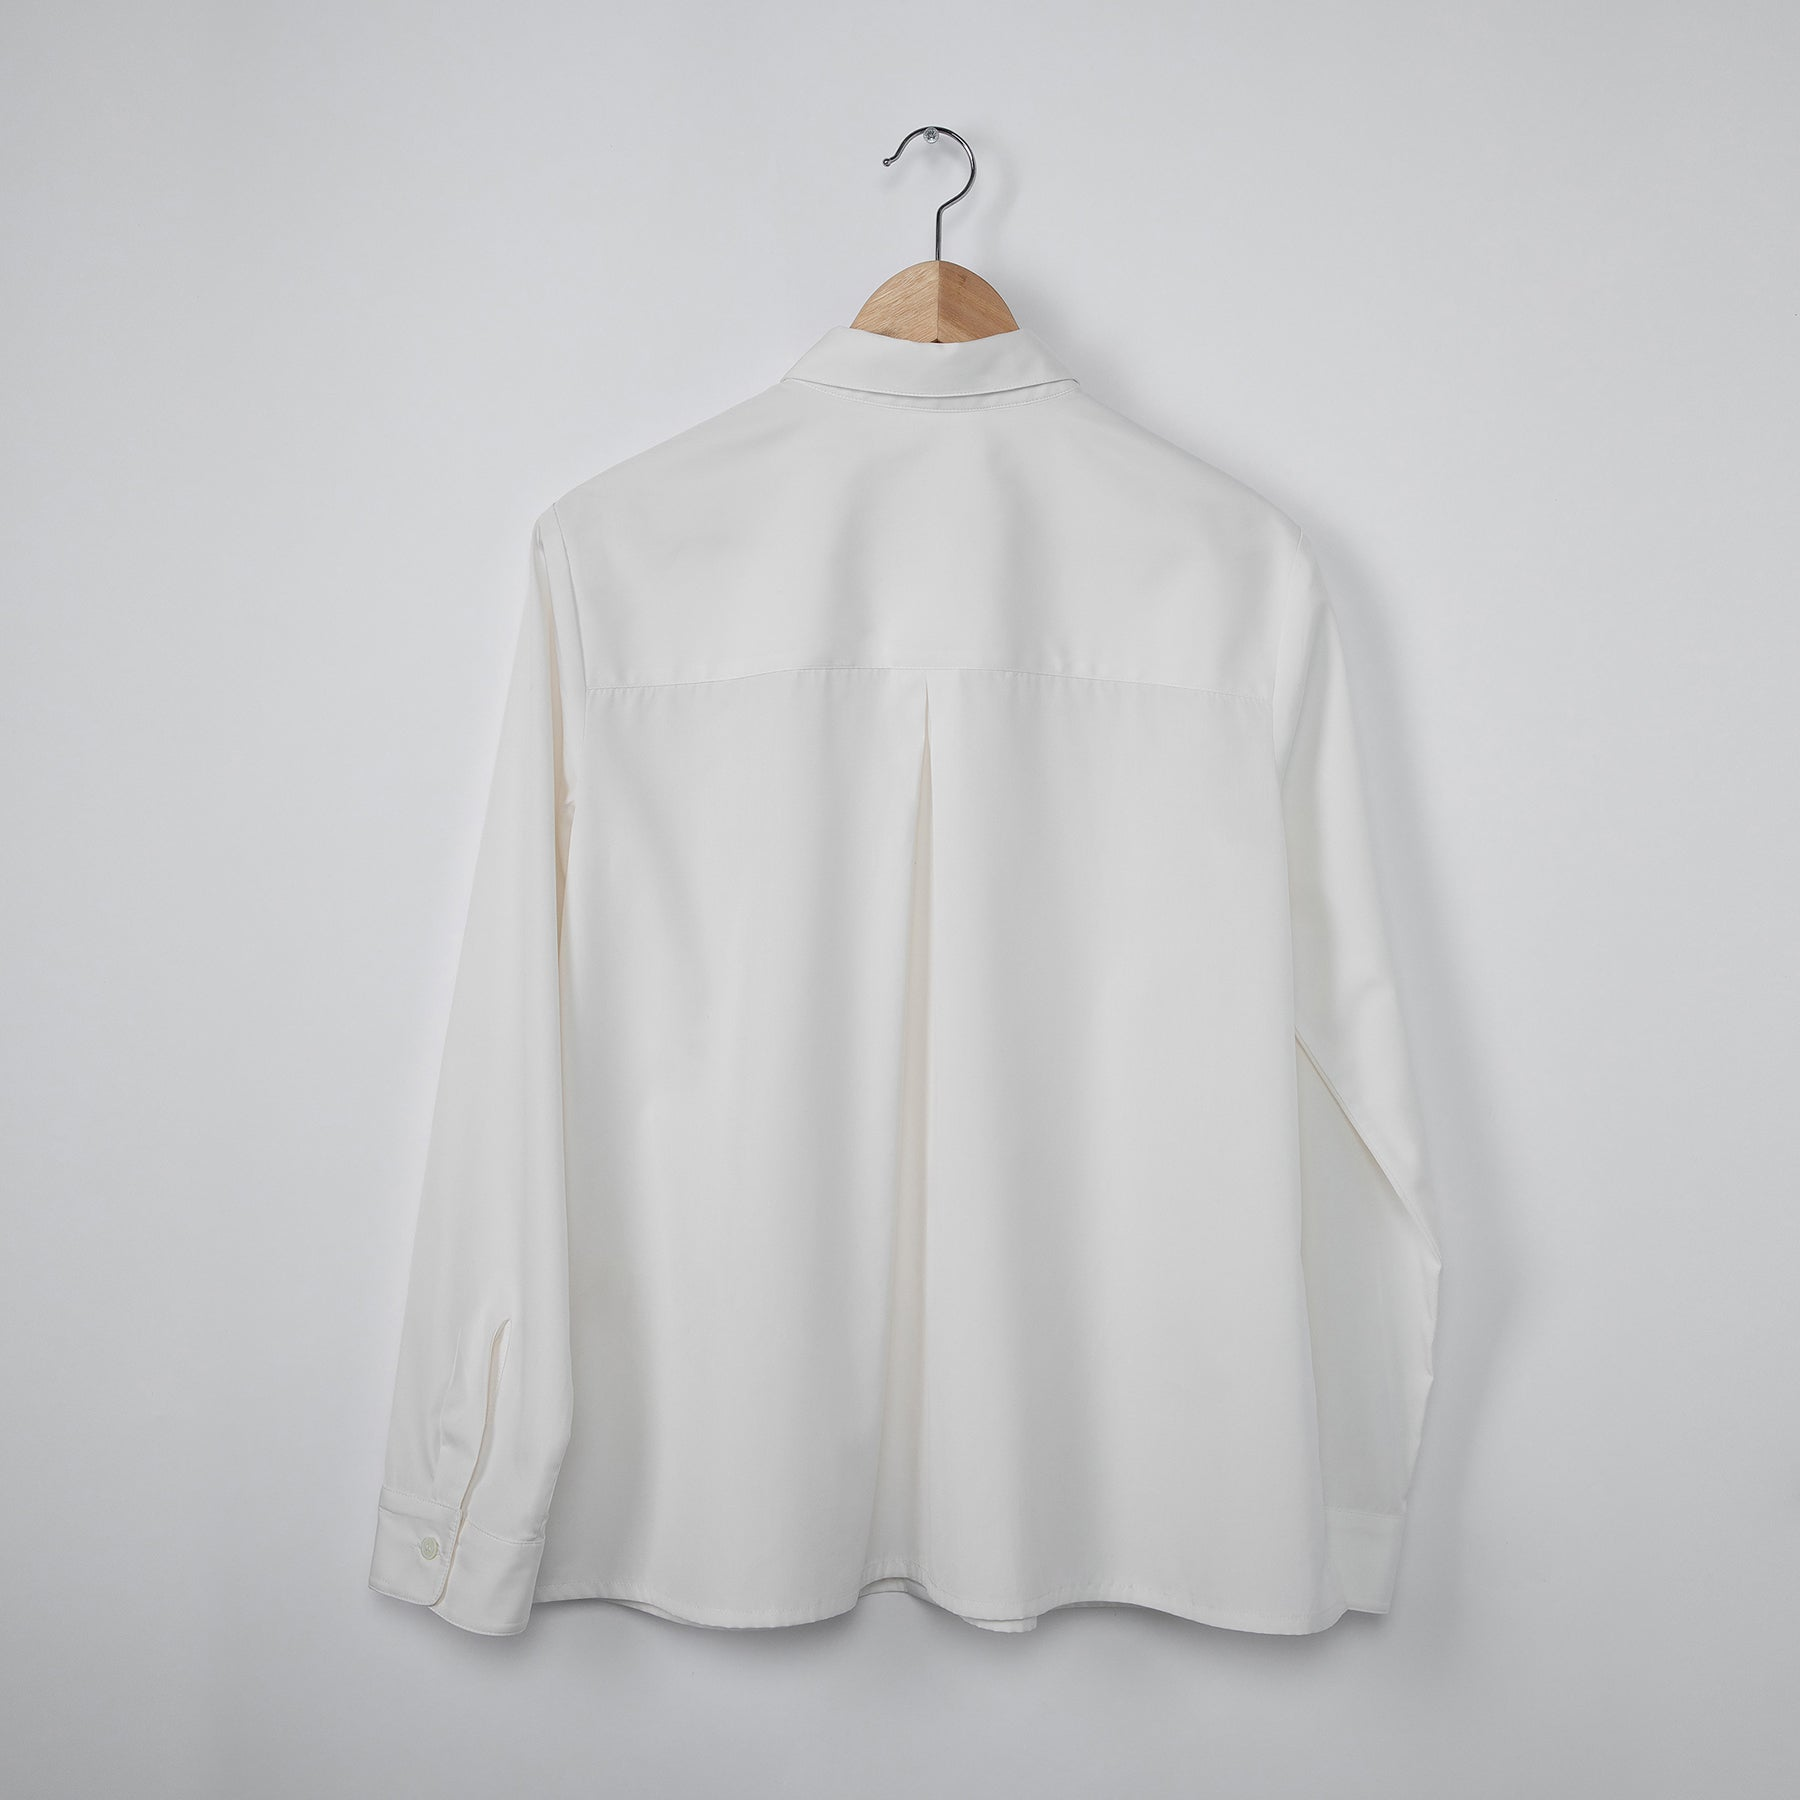 White eco shirt. GOTS certified textile. 100% natural. Sustainable fashion.